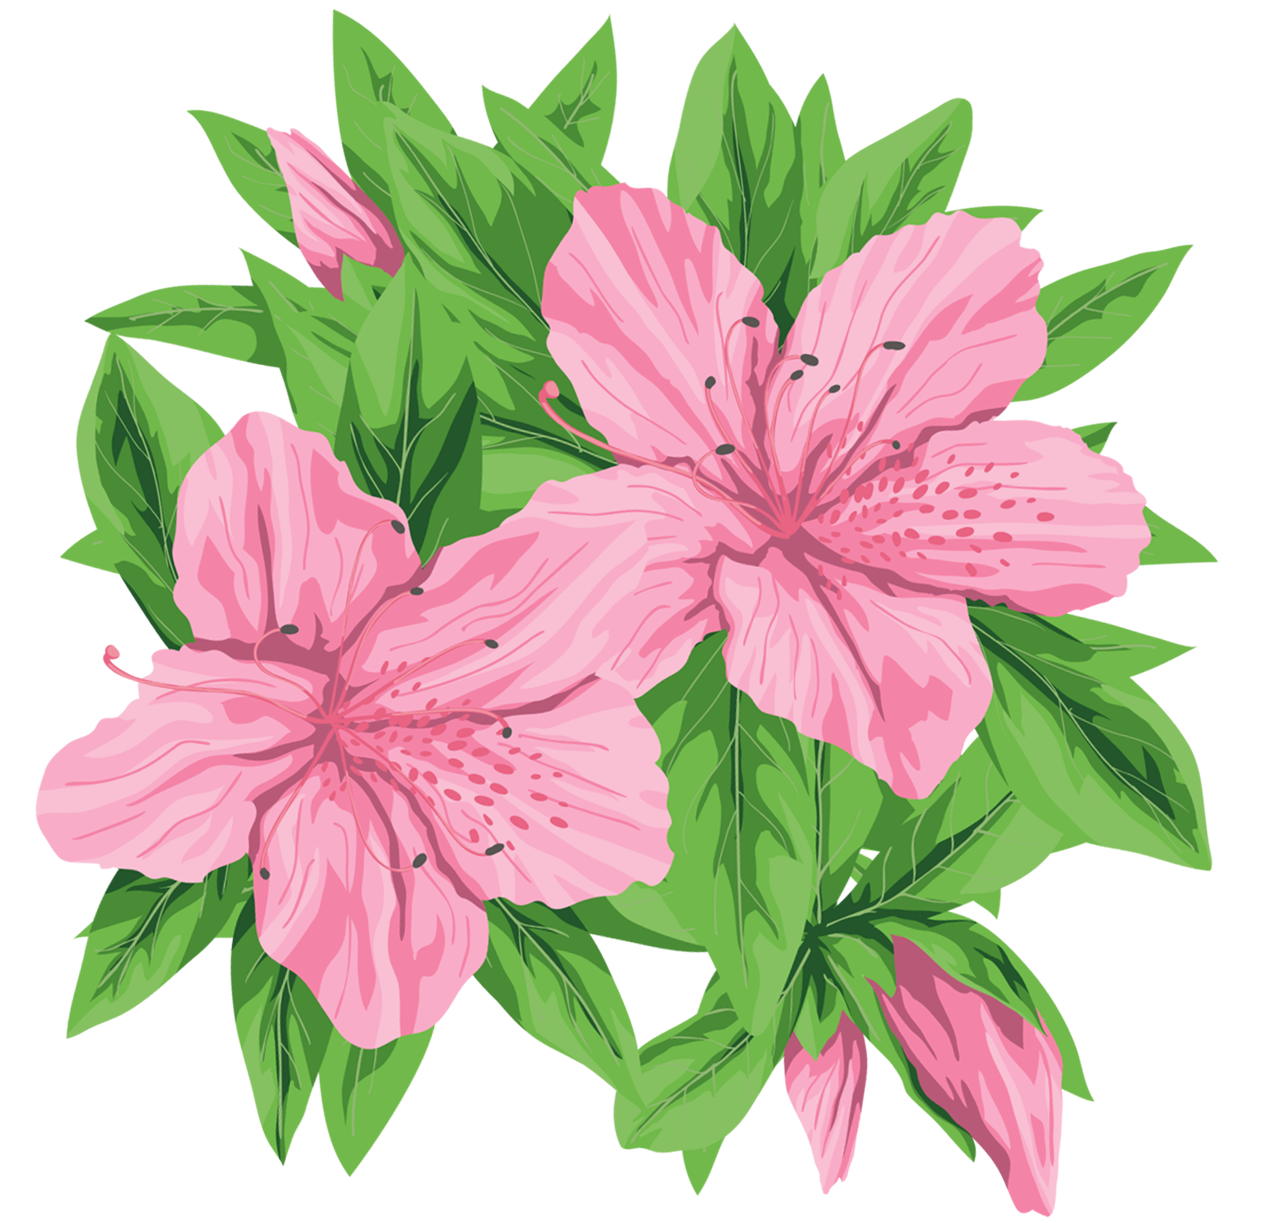 Teal and pink flower clipart image transparent library Free Clipart Flowers at GetDrawings.com | Free for personal use Free ... image transparent library